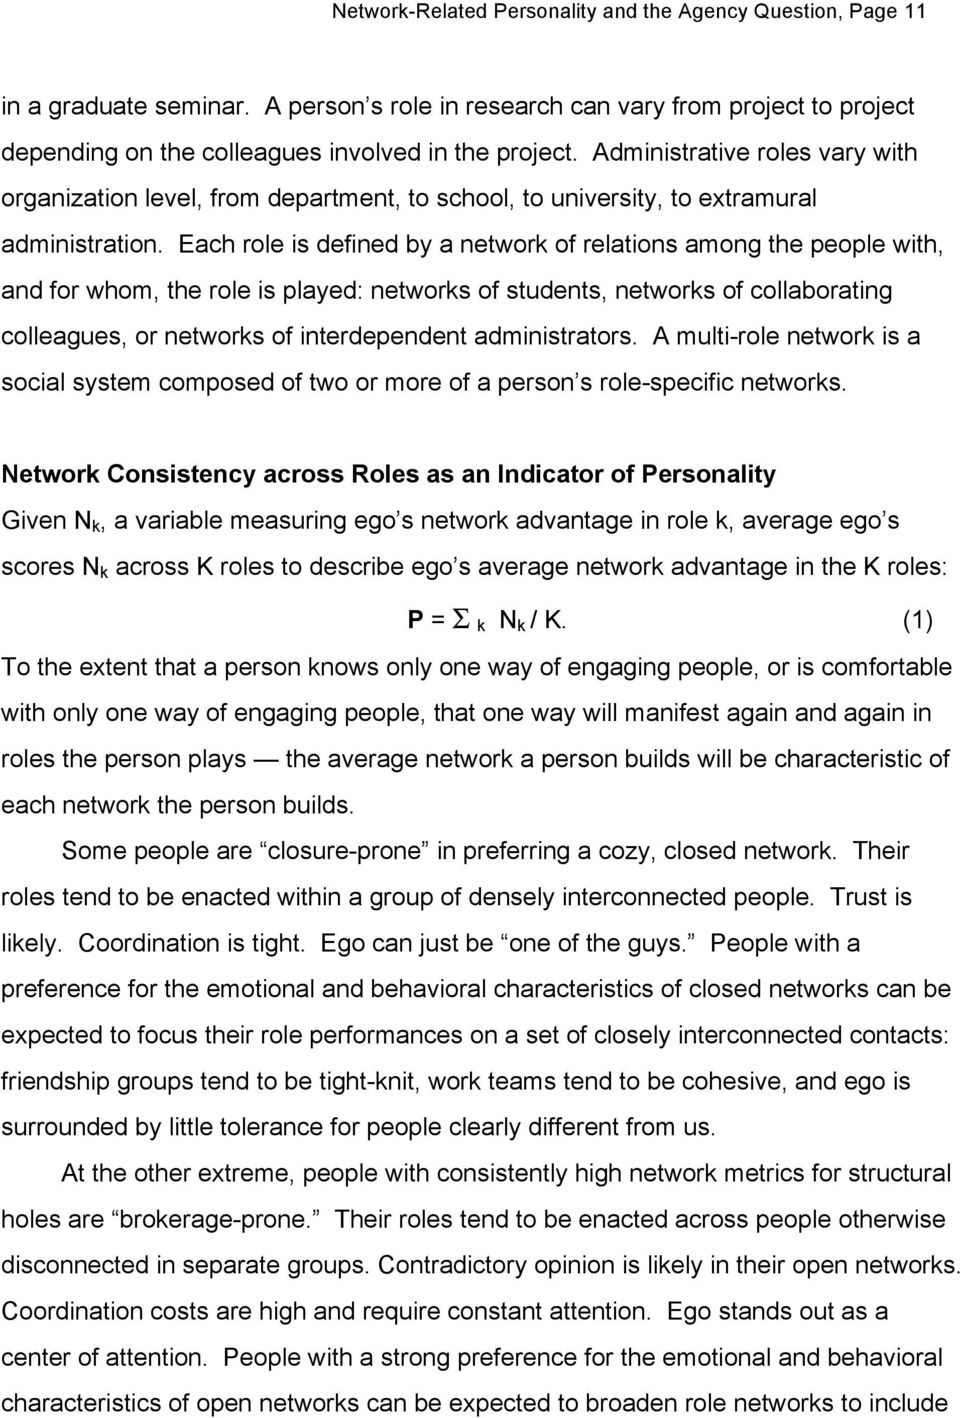 Each role is defined by a network of relations among the people with, and for whom, the role is played: networks of students, networks of collaborating colleagues, or networks of interdependent